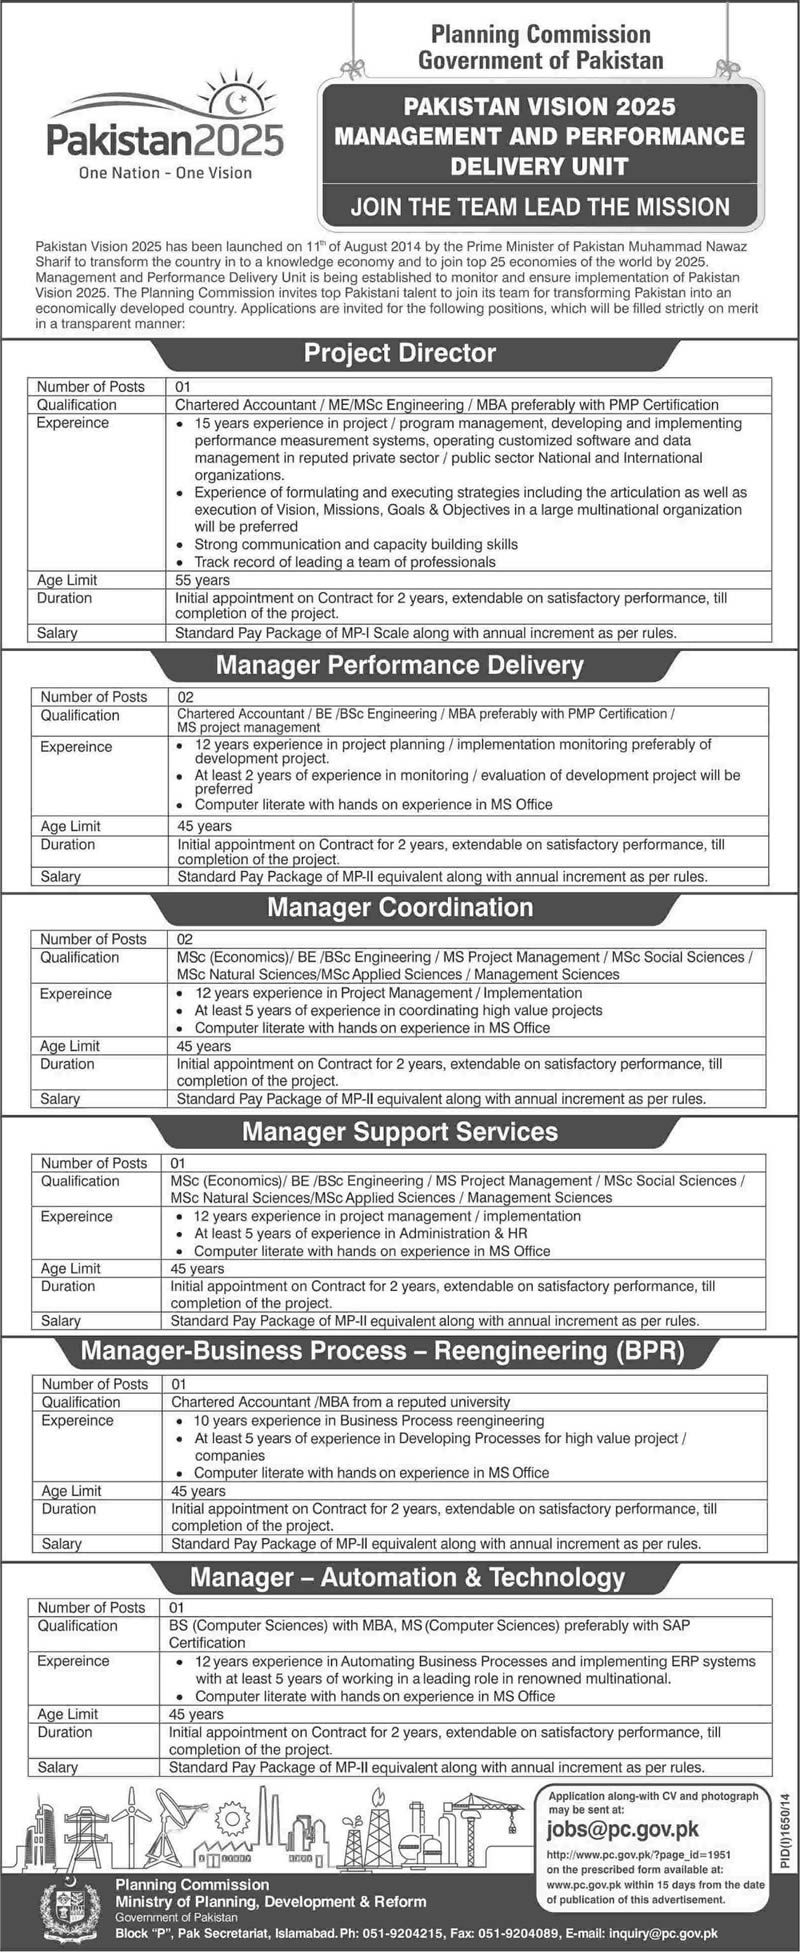 Planning commission of pakistan jobs 2014 october application form planning commission of pakistan jobs 2014 october application form download 1betcityfo Image collections